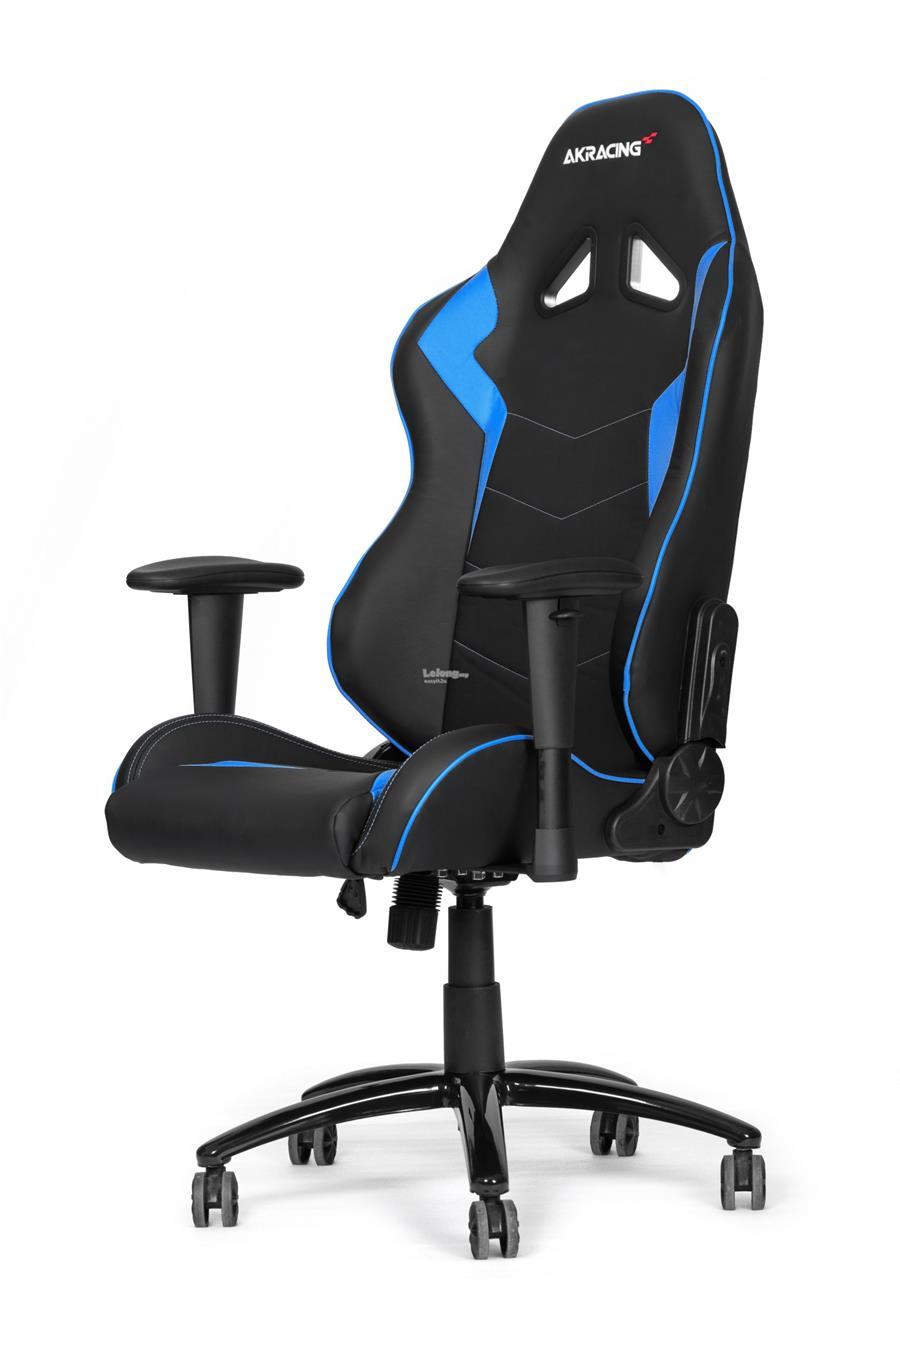 AKRACING OCTANE K702 GAMING CHAIR (PU LEATHER) BLACK + BLUE